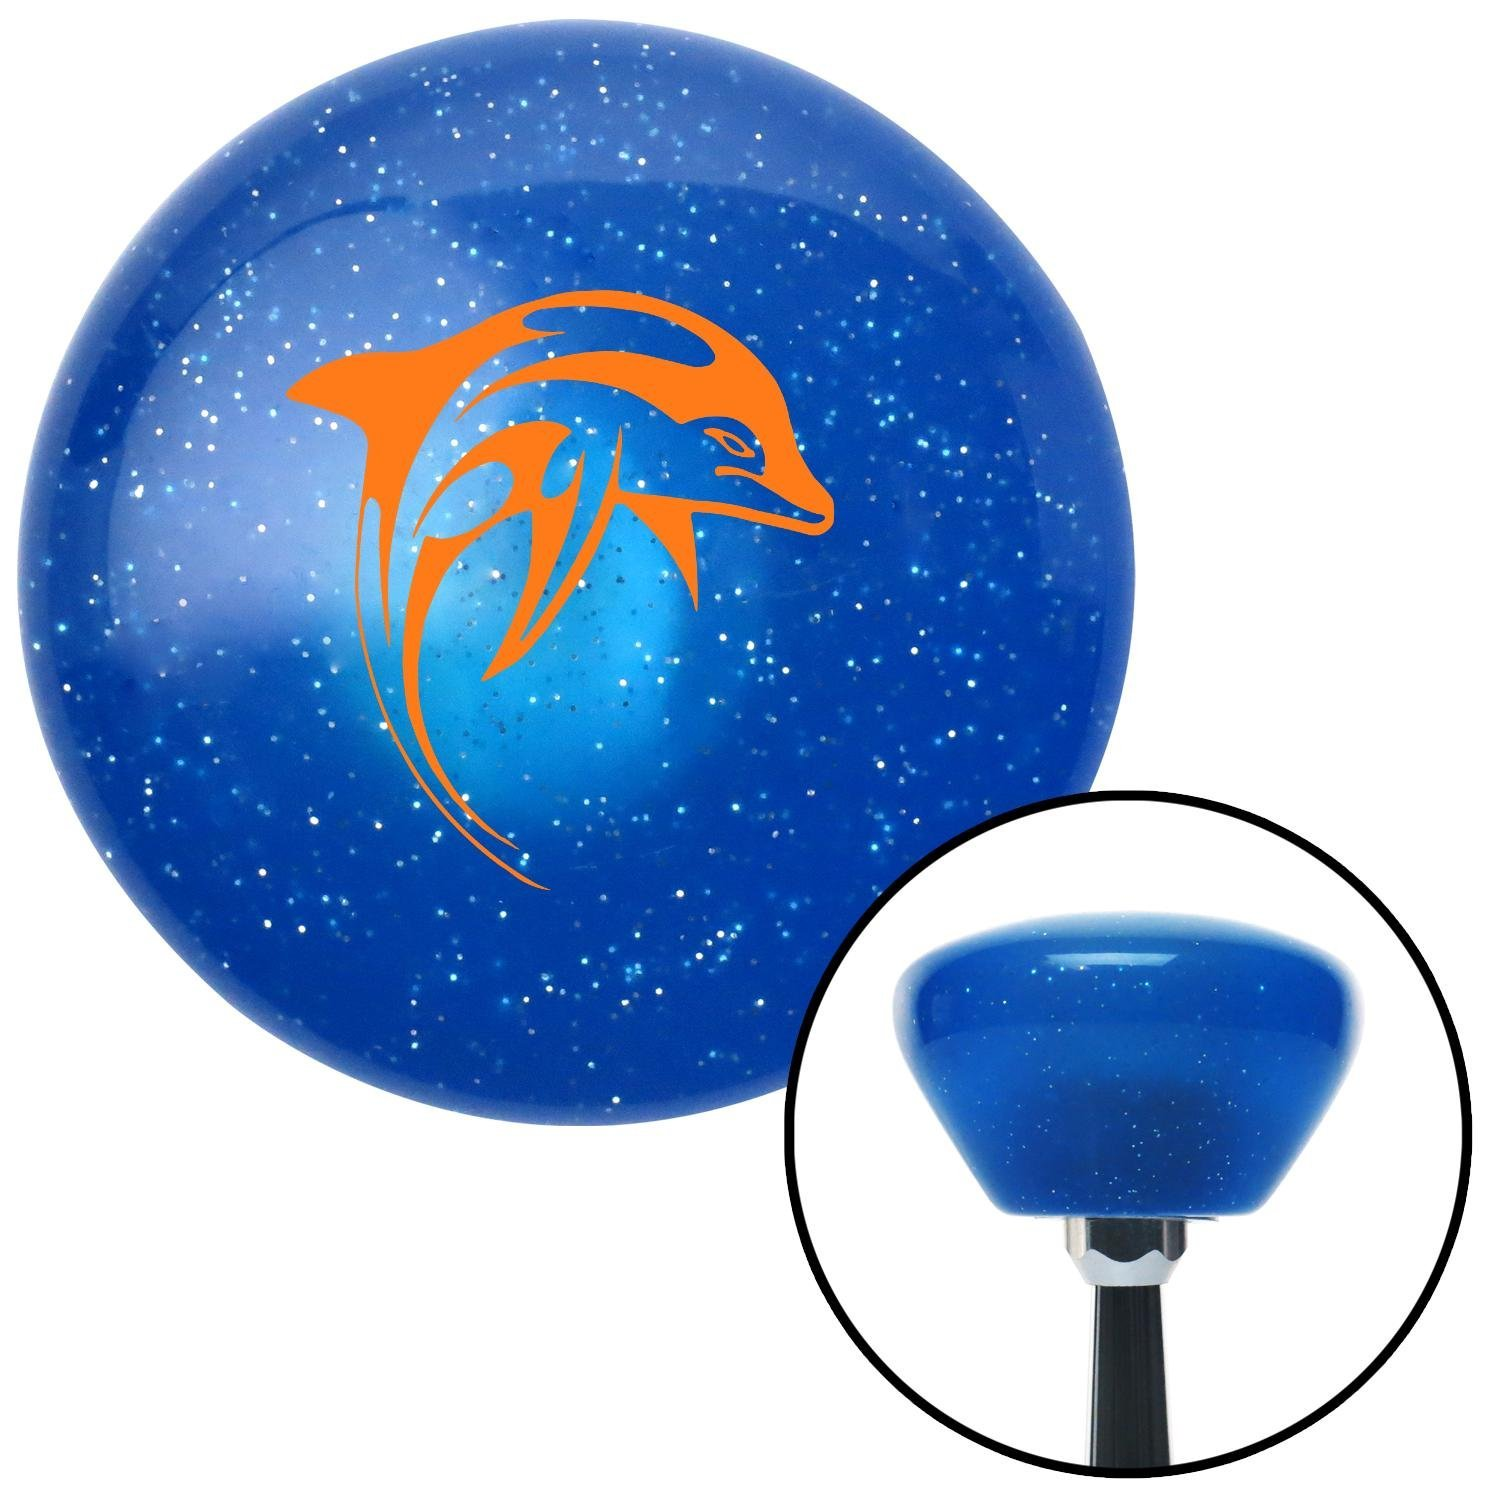 American Shifter 189383 Blue Retro Metal Flake Shift Knob with M16 x 1.5 Insert Orange Artistic Dolphin